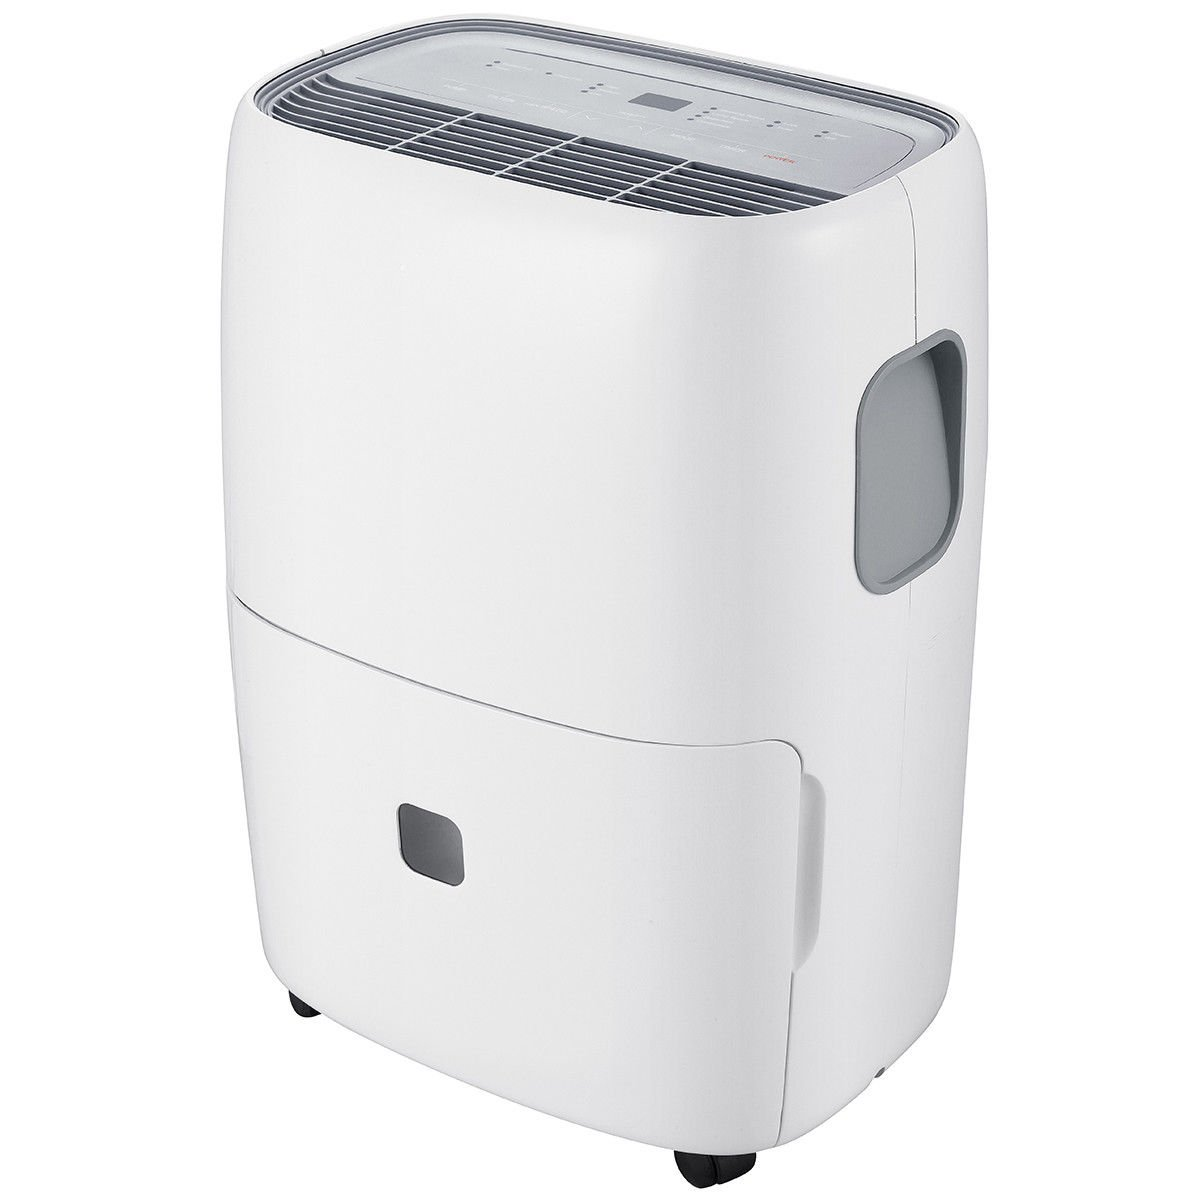 Portable 70 Pint Dehumidifier Humidity Control with Casters Washable Air Filter